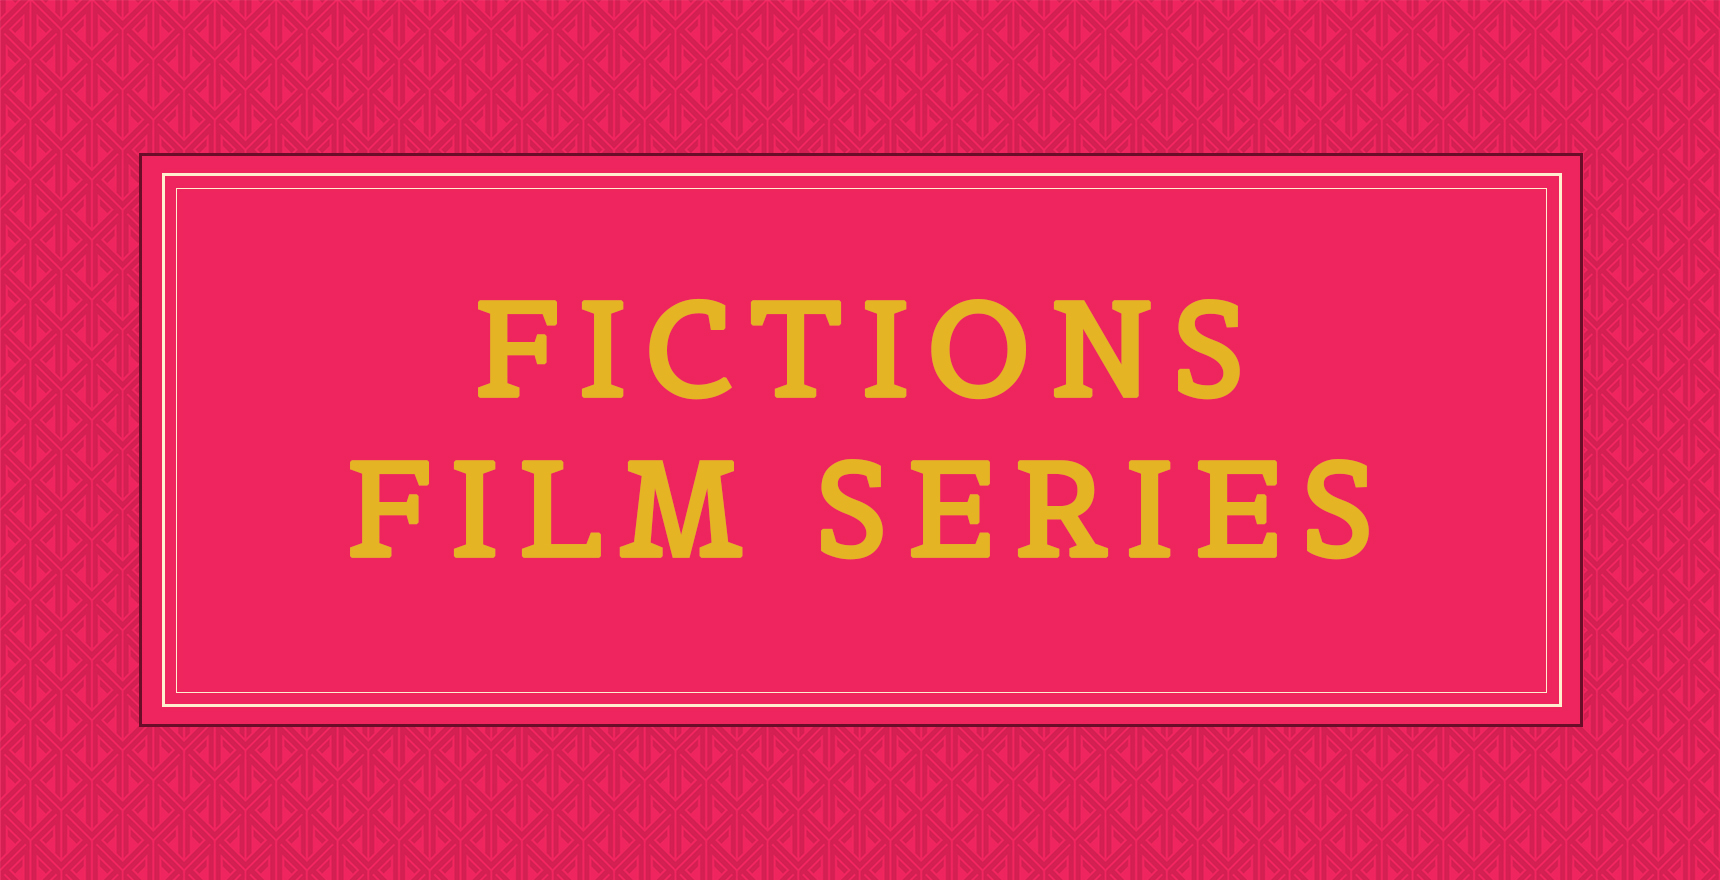 Fictions Film Series graphic